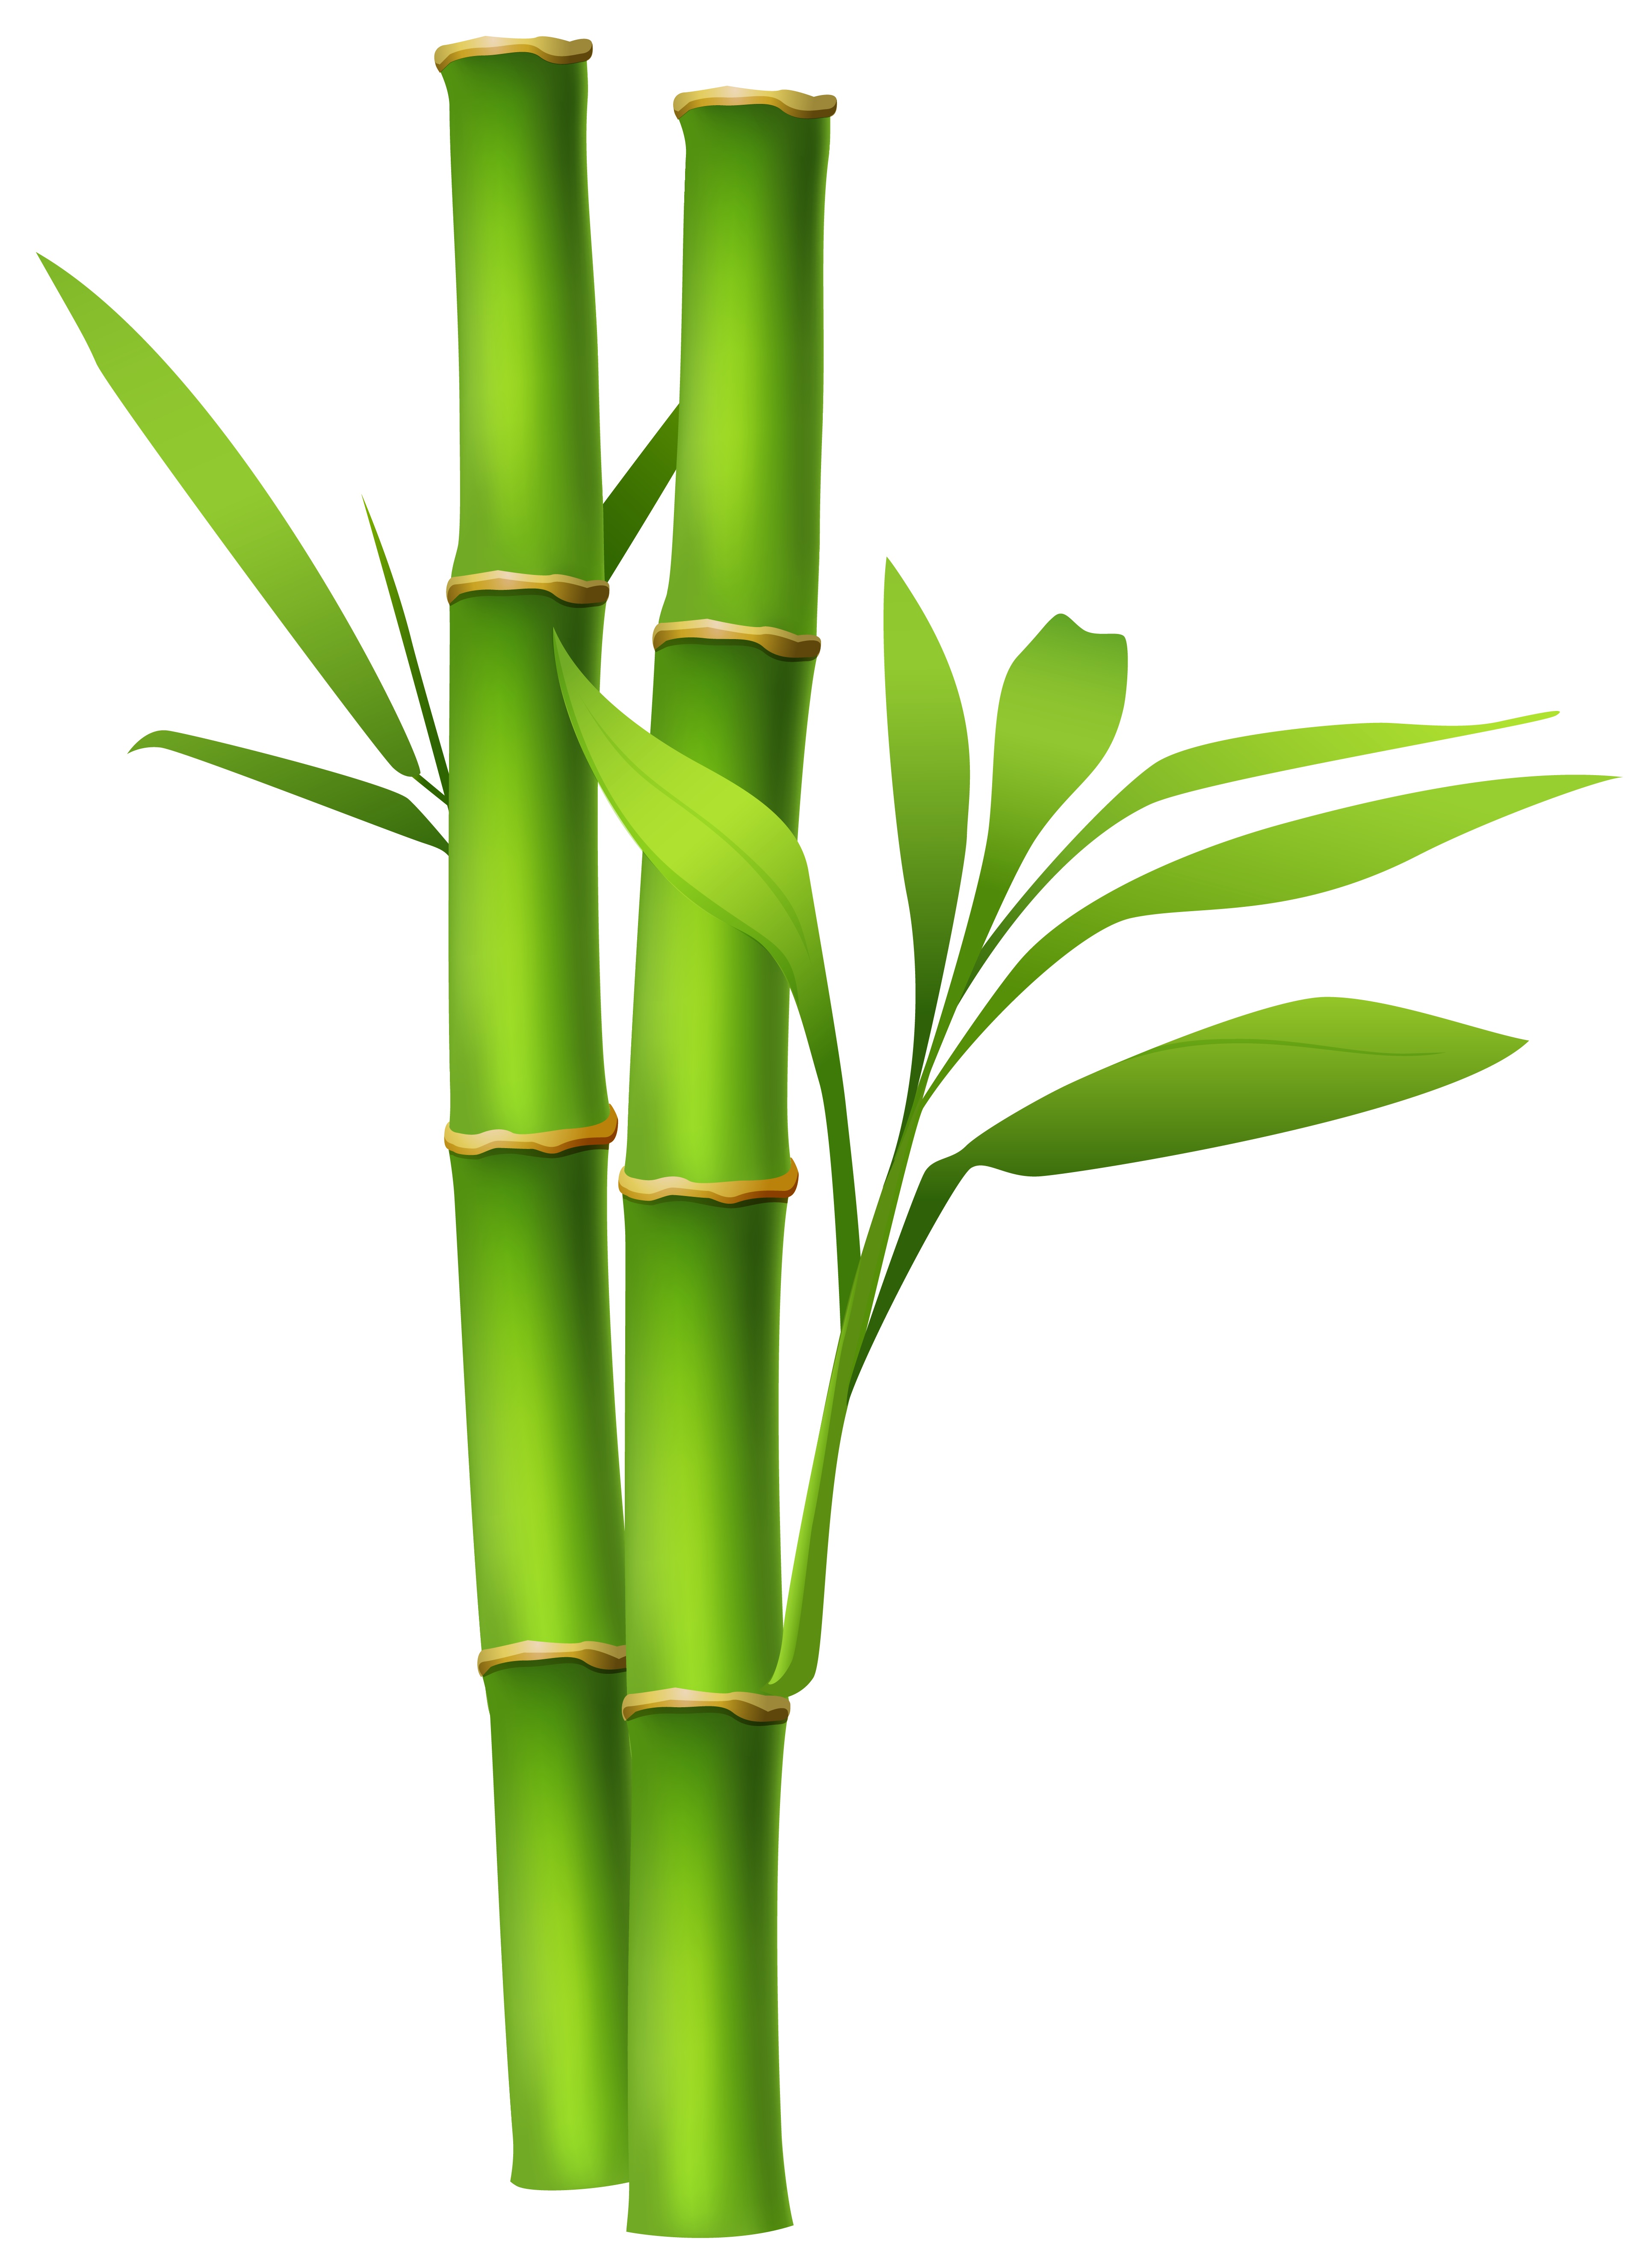 Bamboo clipart High Quality and Gallery Image